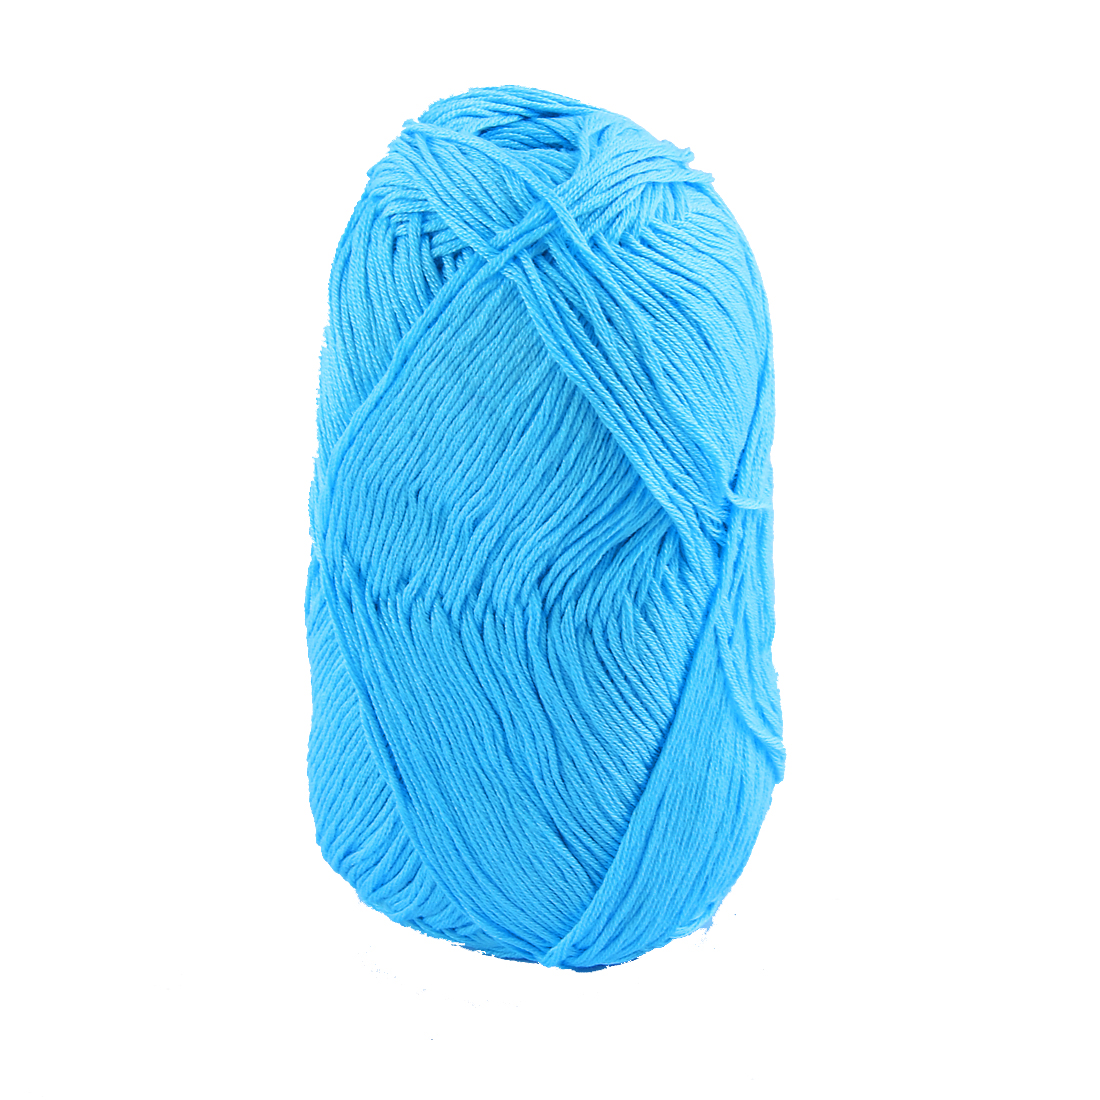 Cotton Hand Knitting Clothes Hat Sweater Crocheting Crochet Thread 50 Gram Blue